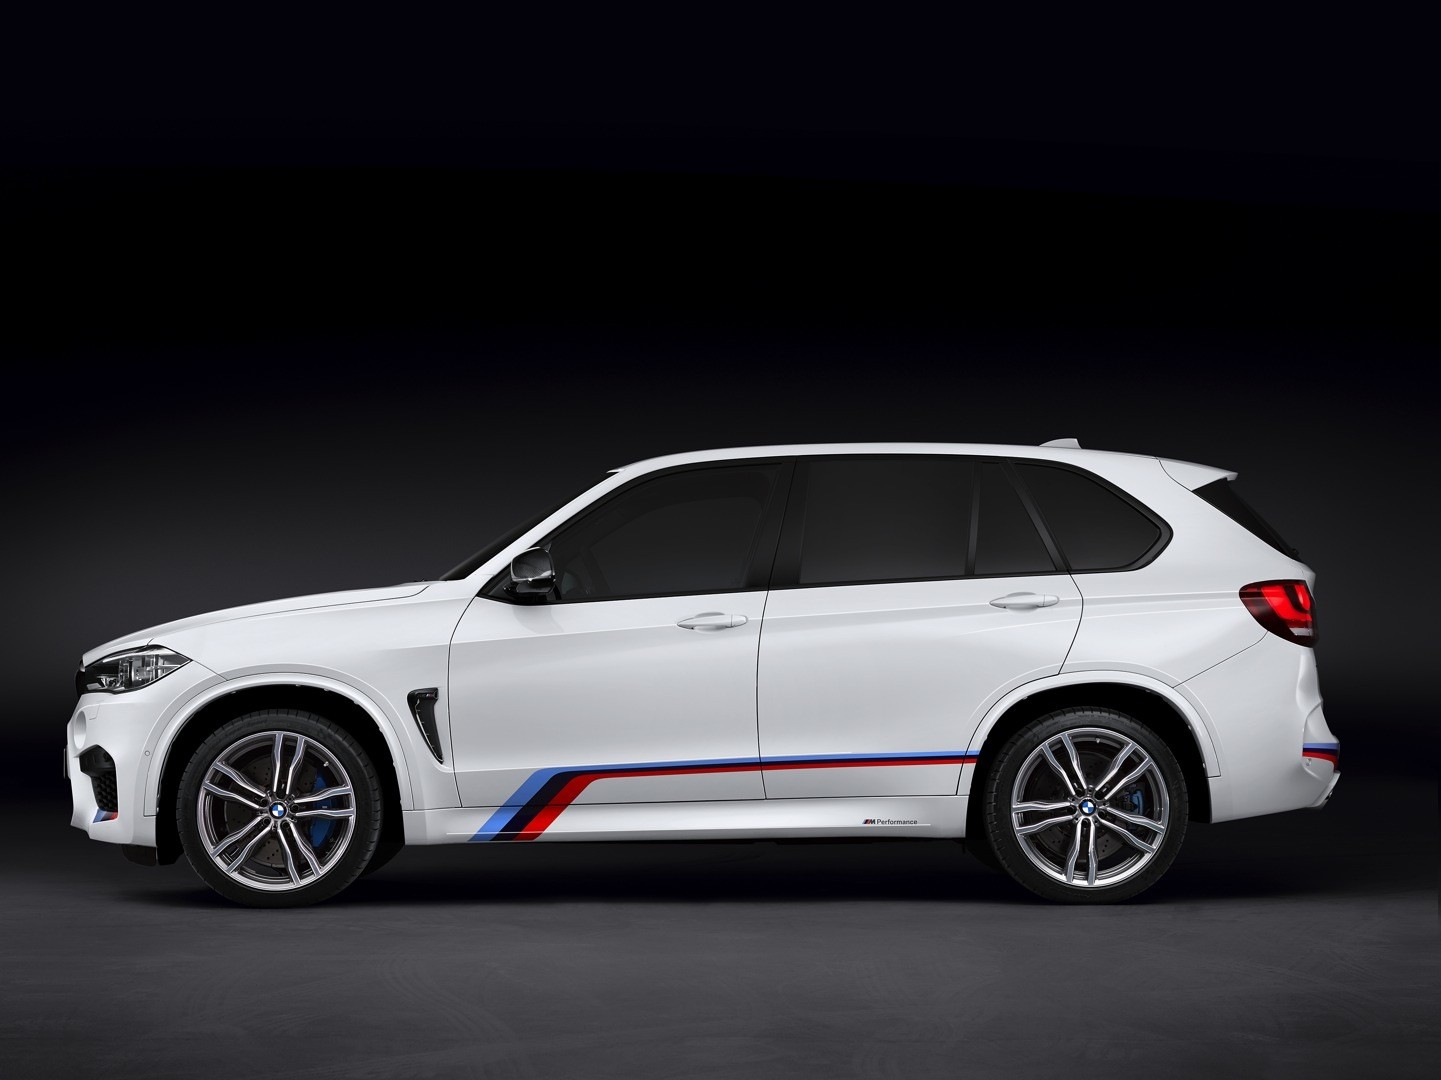 Bmw Unveils M Performance Parts For X5 M And X6 M Models